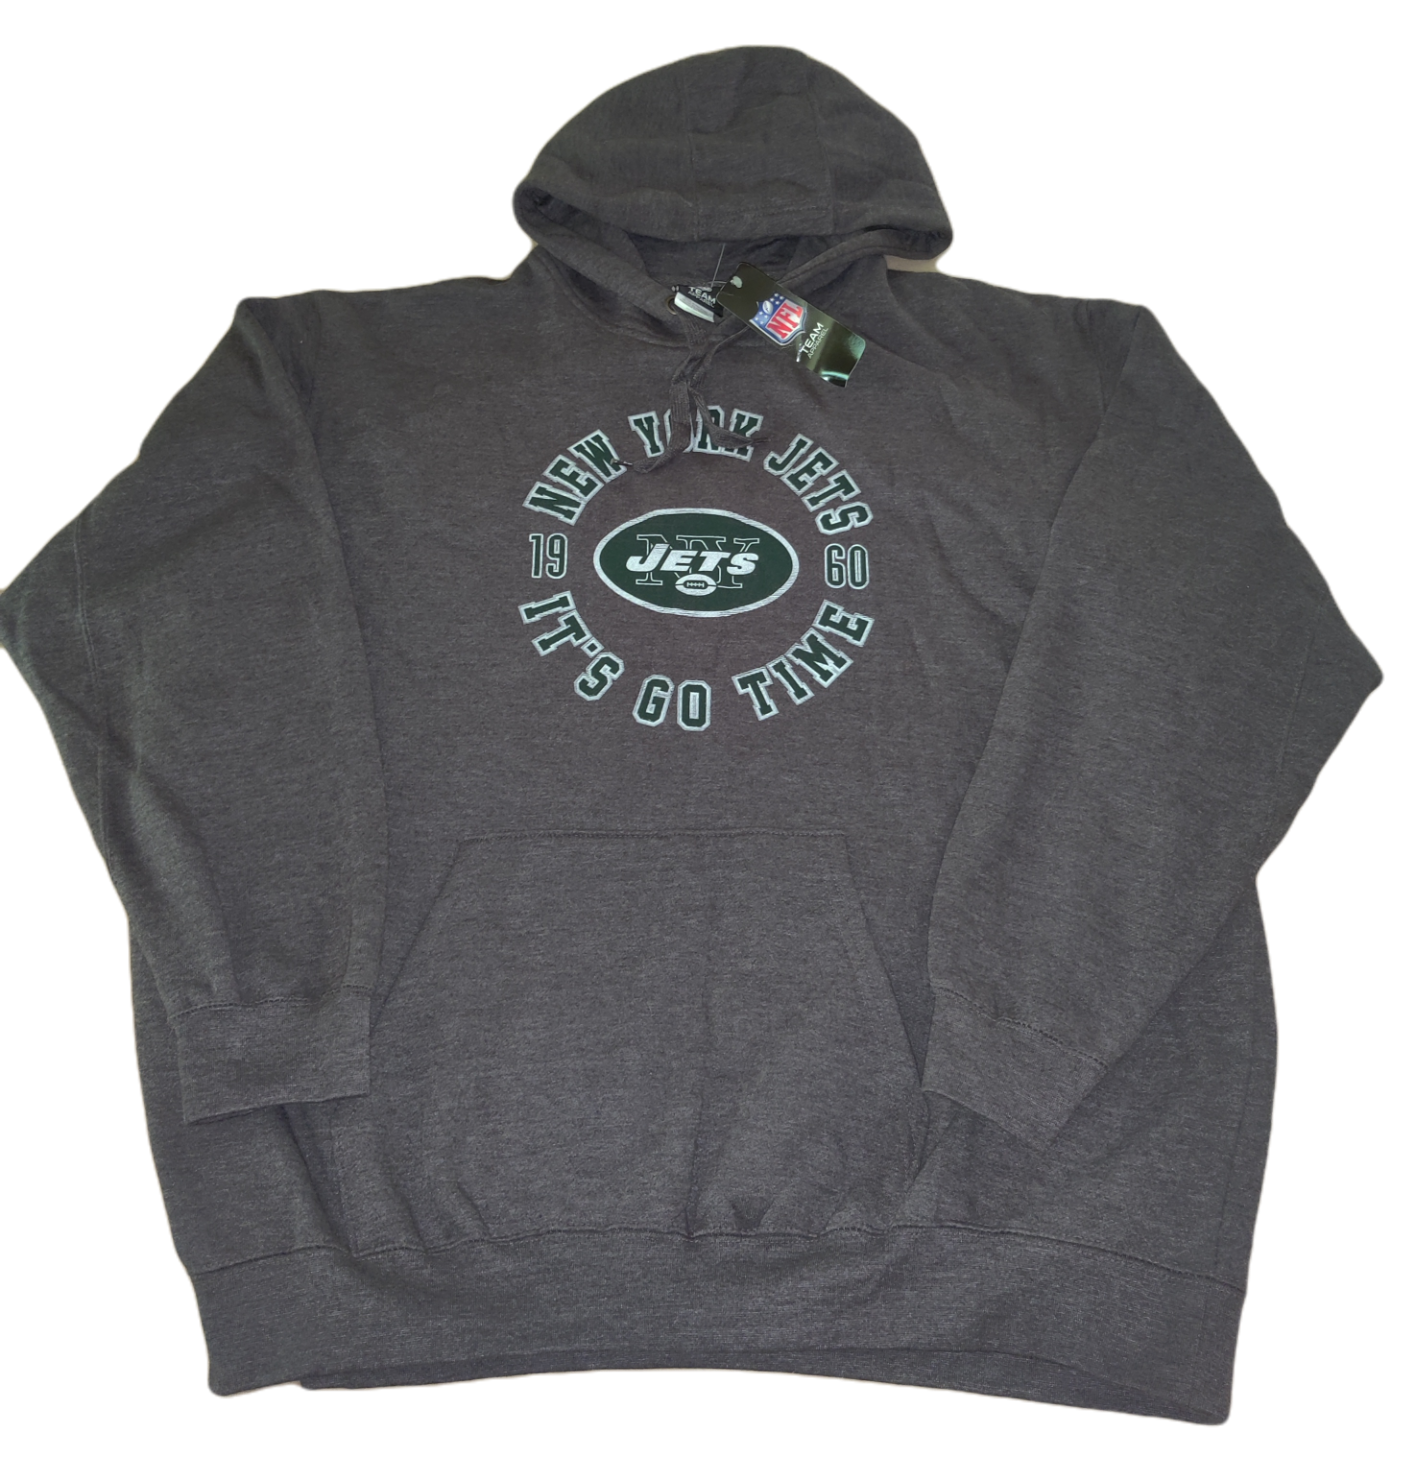 Primary image for NWT New York Jets Team NFL Team Apparel Long Sleeve Sweatshirt Est 1960 Size 2XL